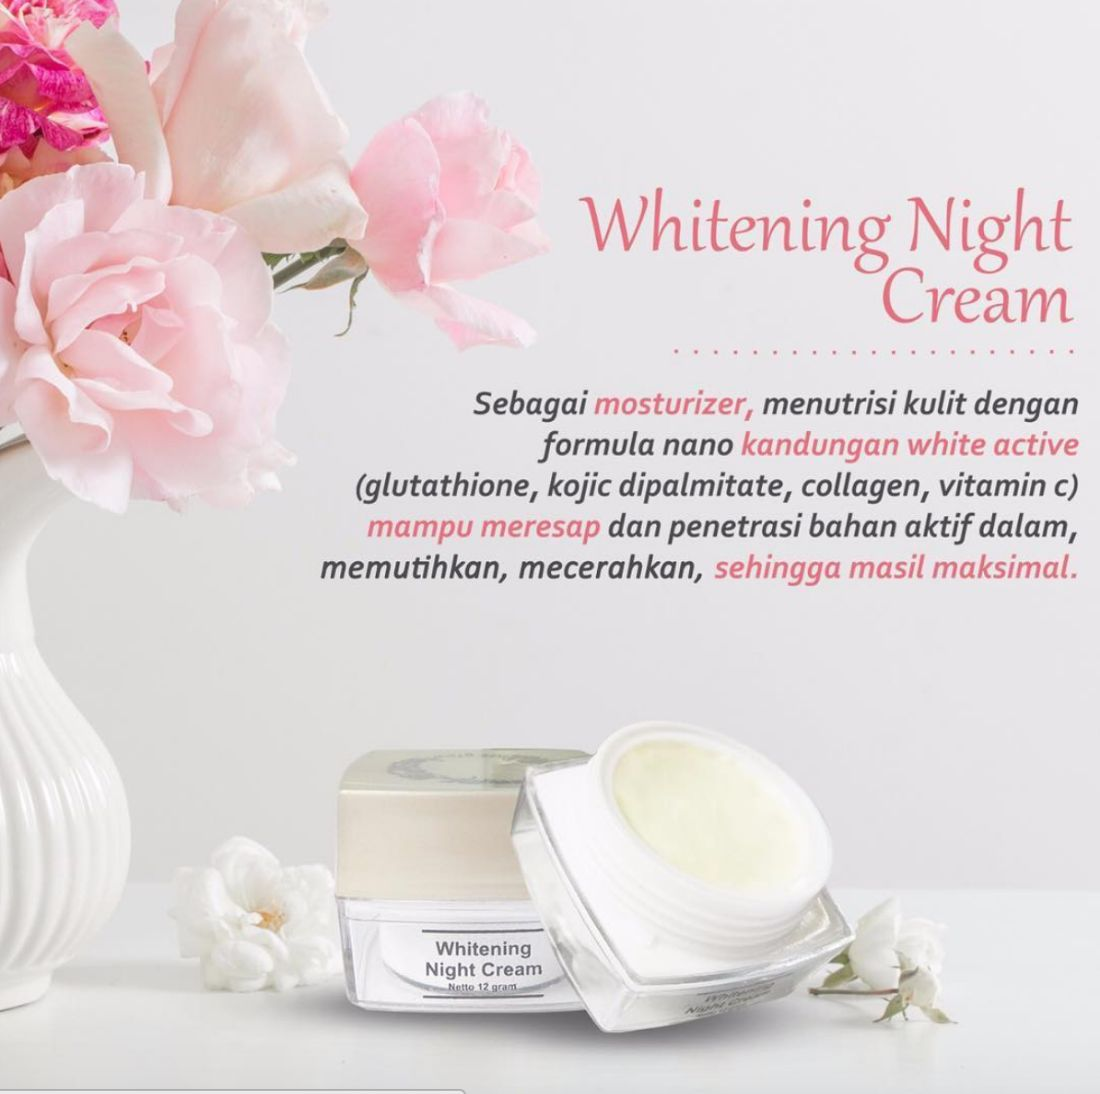 Kandungan Whitening Night Cream MS Glow